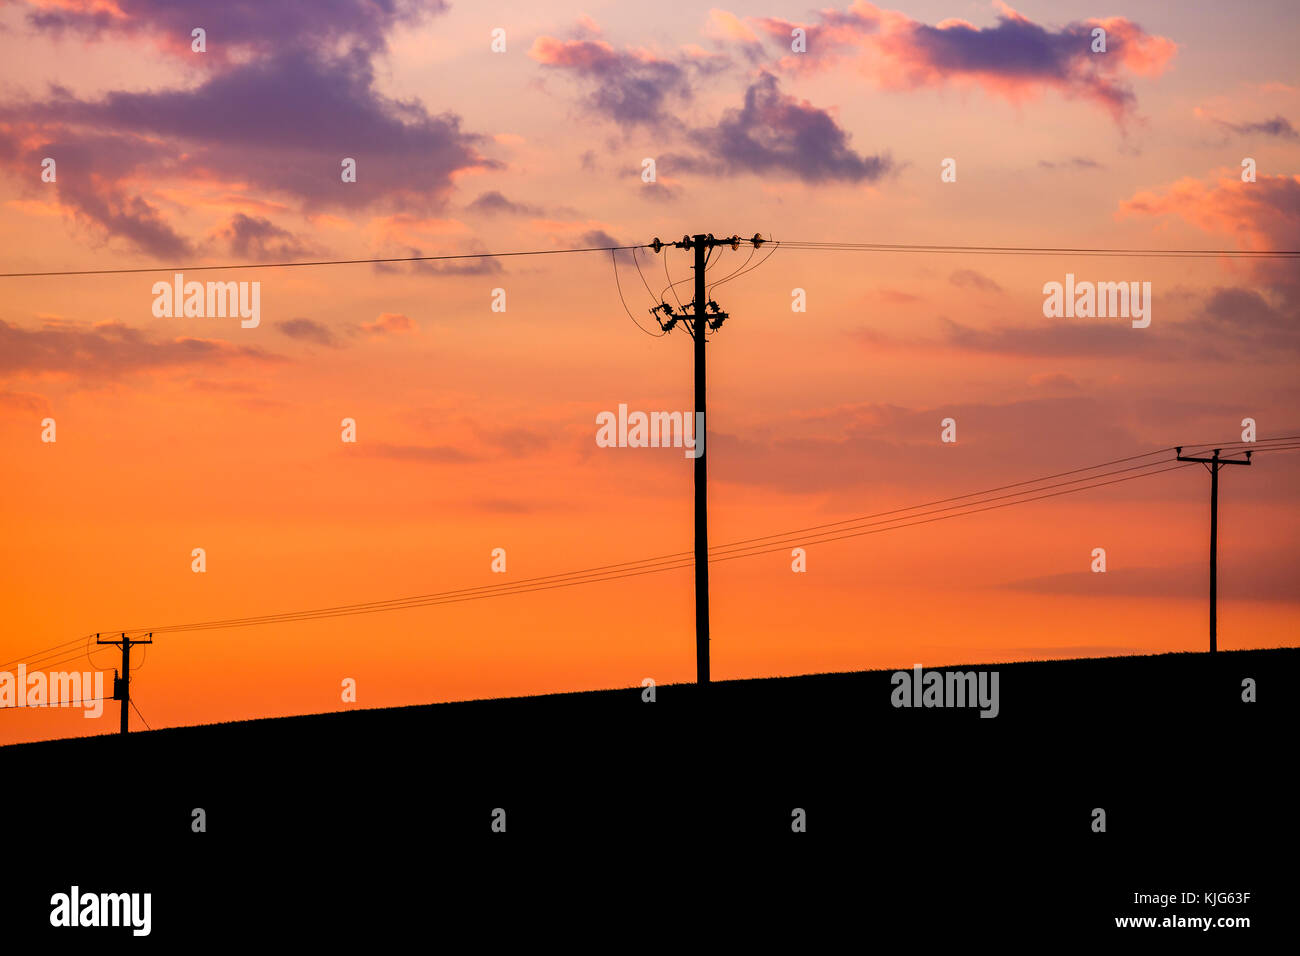 Powerlines and telphone wires against a sunset in Ayr, Scotland, UK. - Stock Image